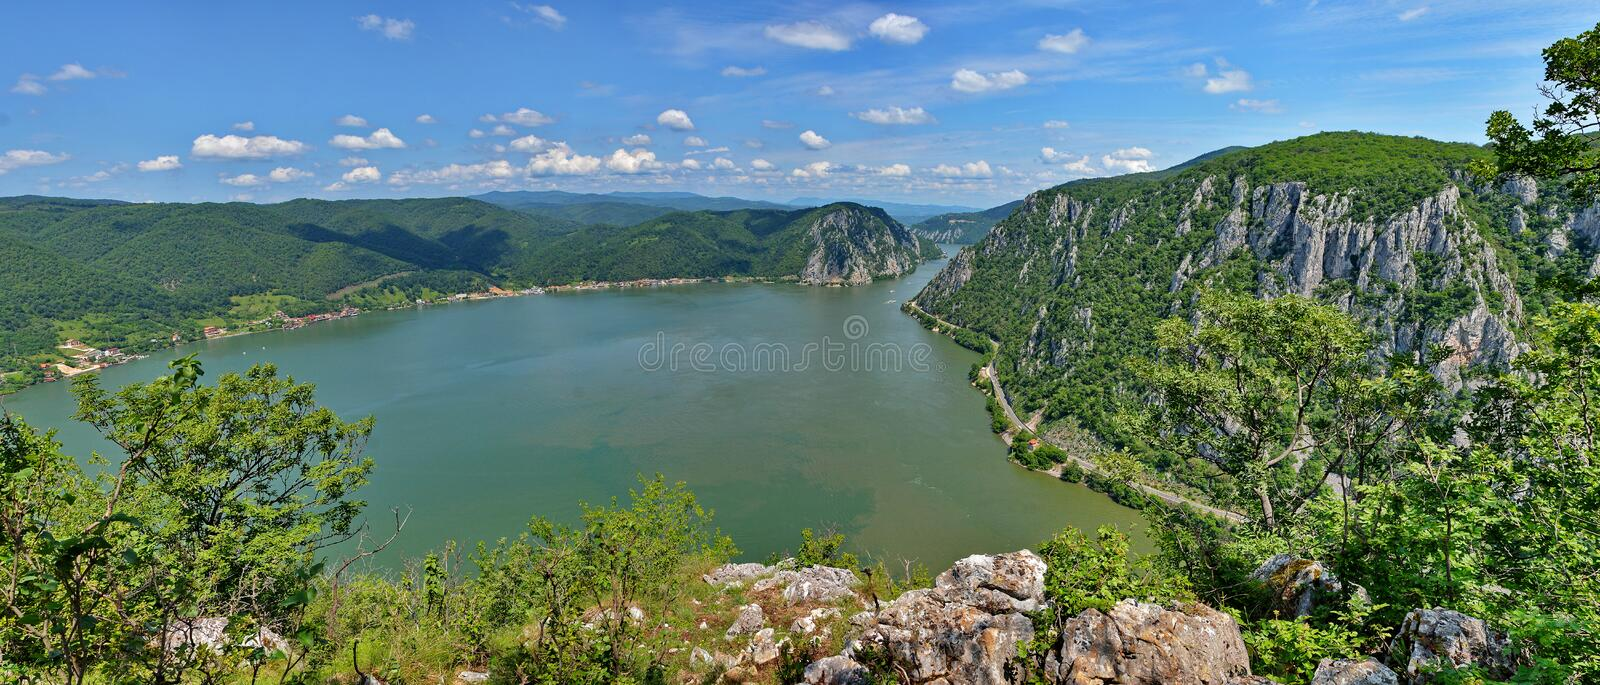 Danube River, Romania. View of the Danube River and Gorges, Romania stock photography